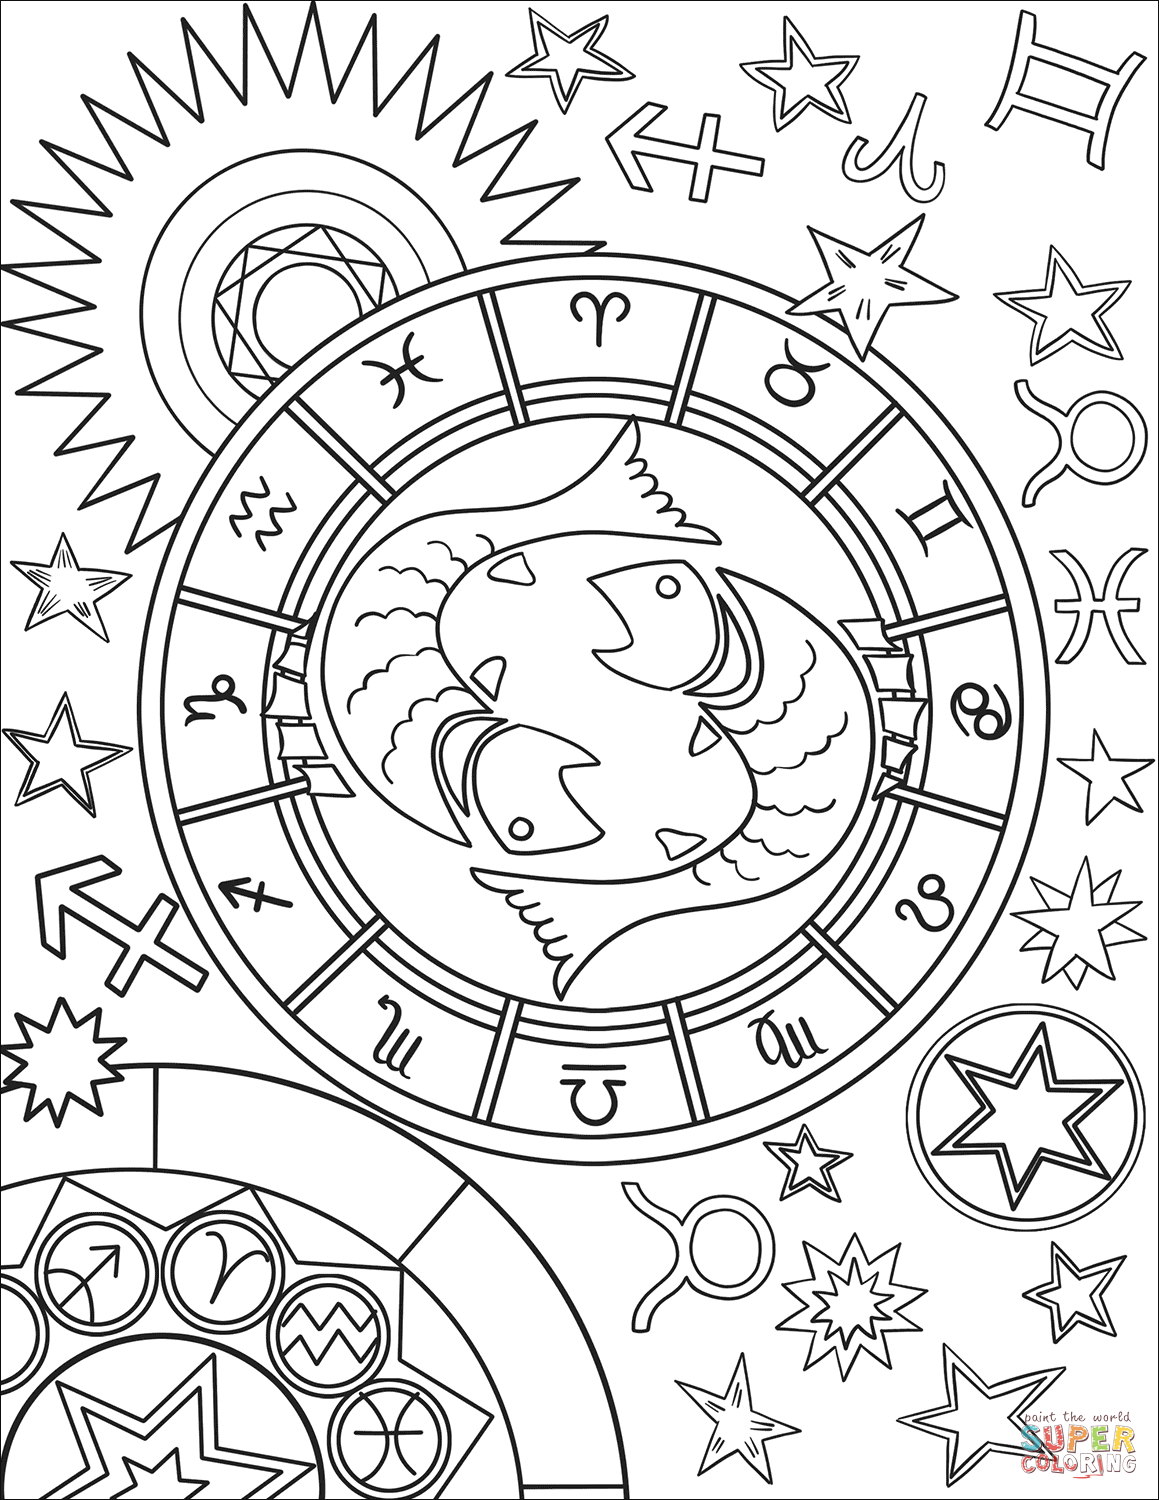 zodiac signs coloring pages zodiac signs coloring pages coloring home pages coloring signs zodiac